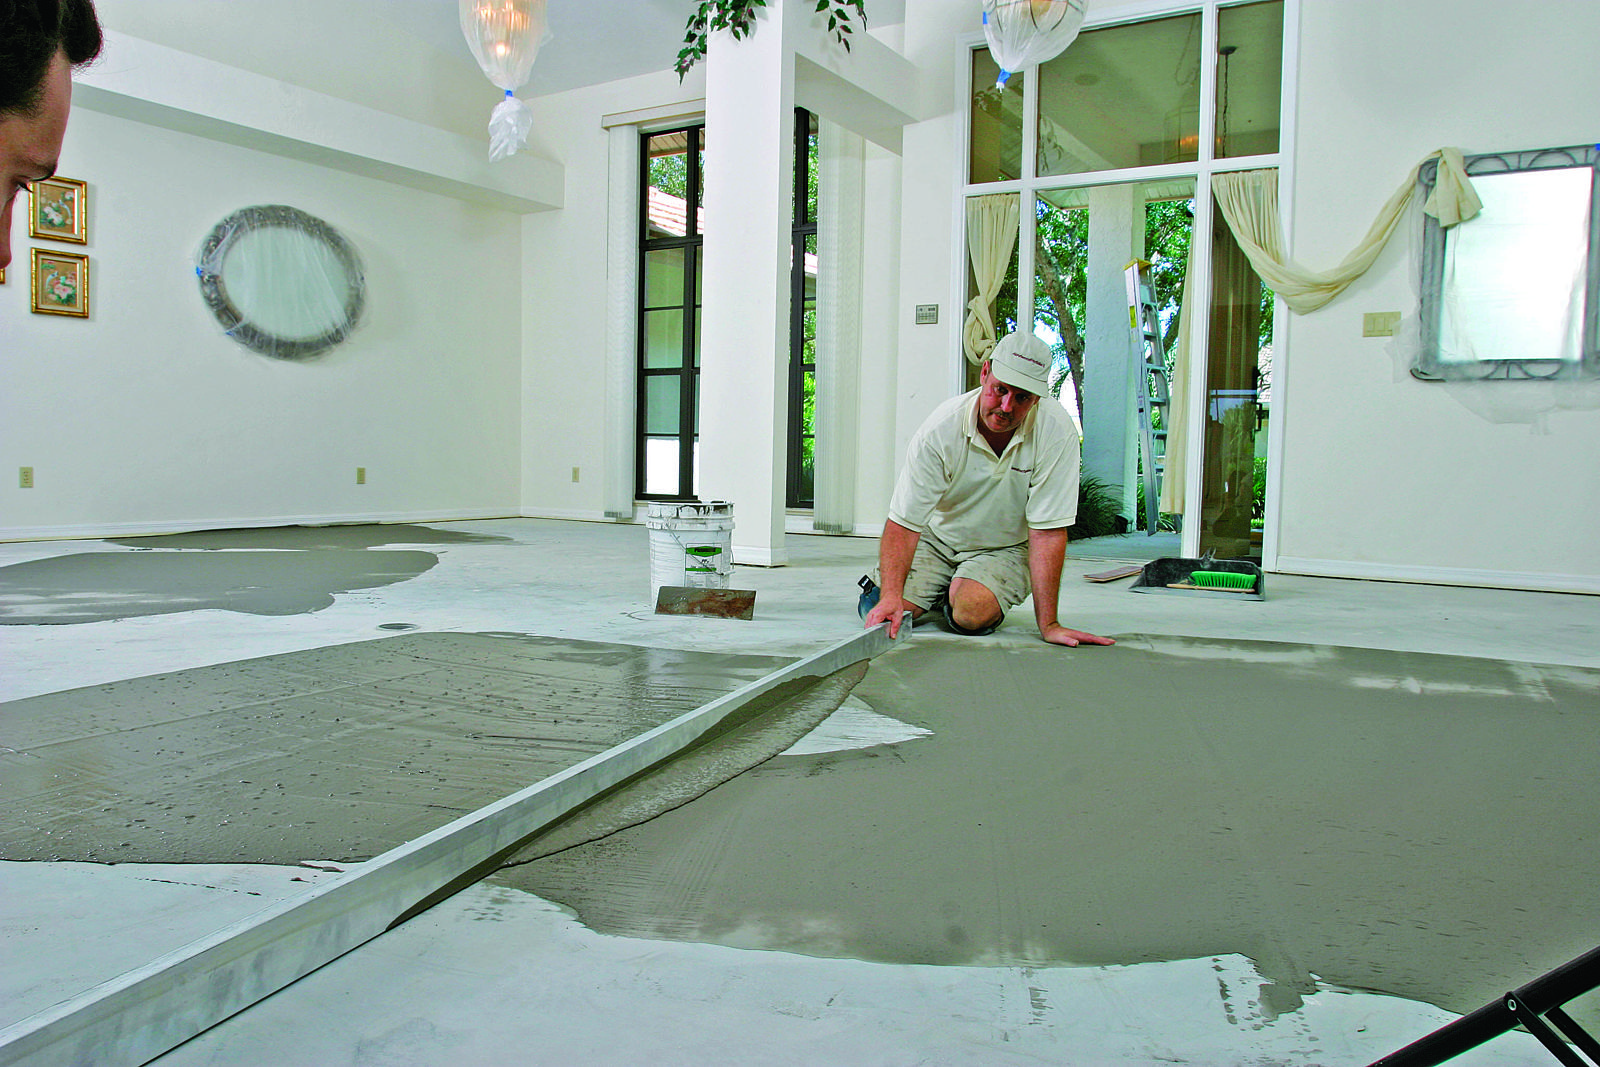 Glue Wood Flooring to a Concrete Slab - Fine Homebuilding